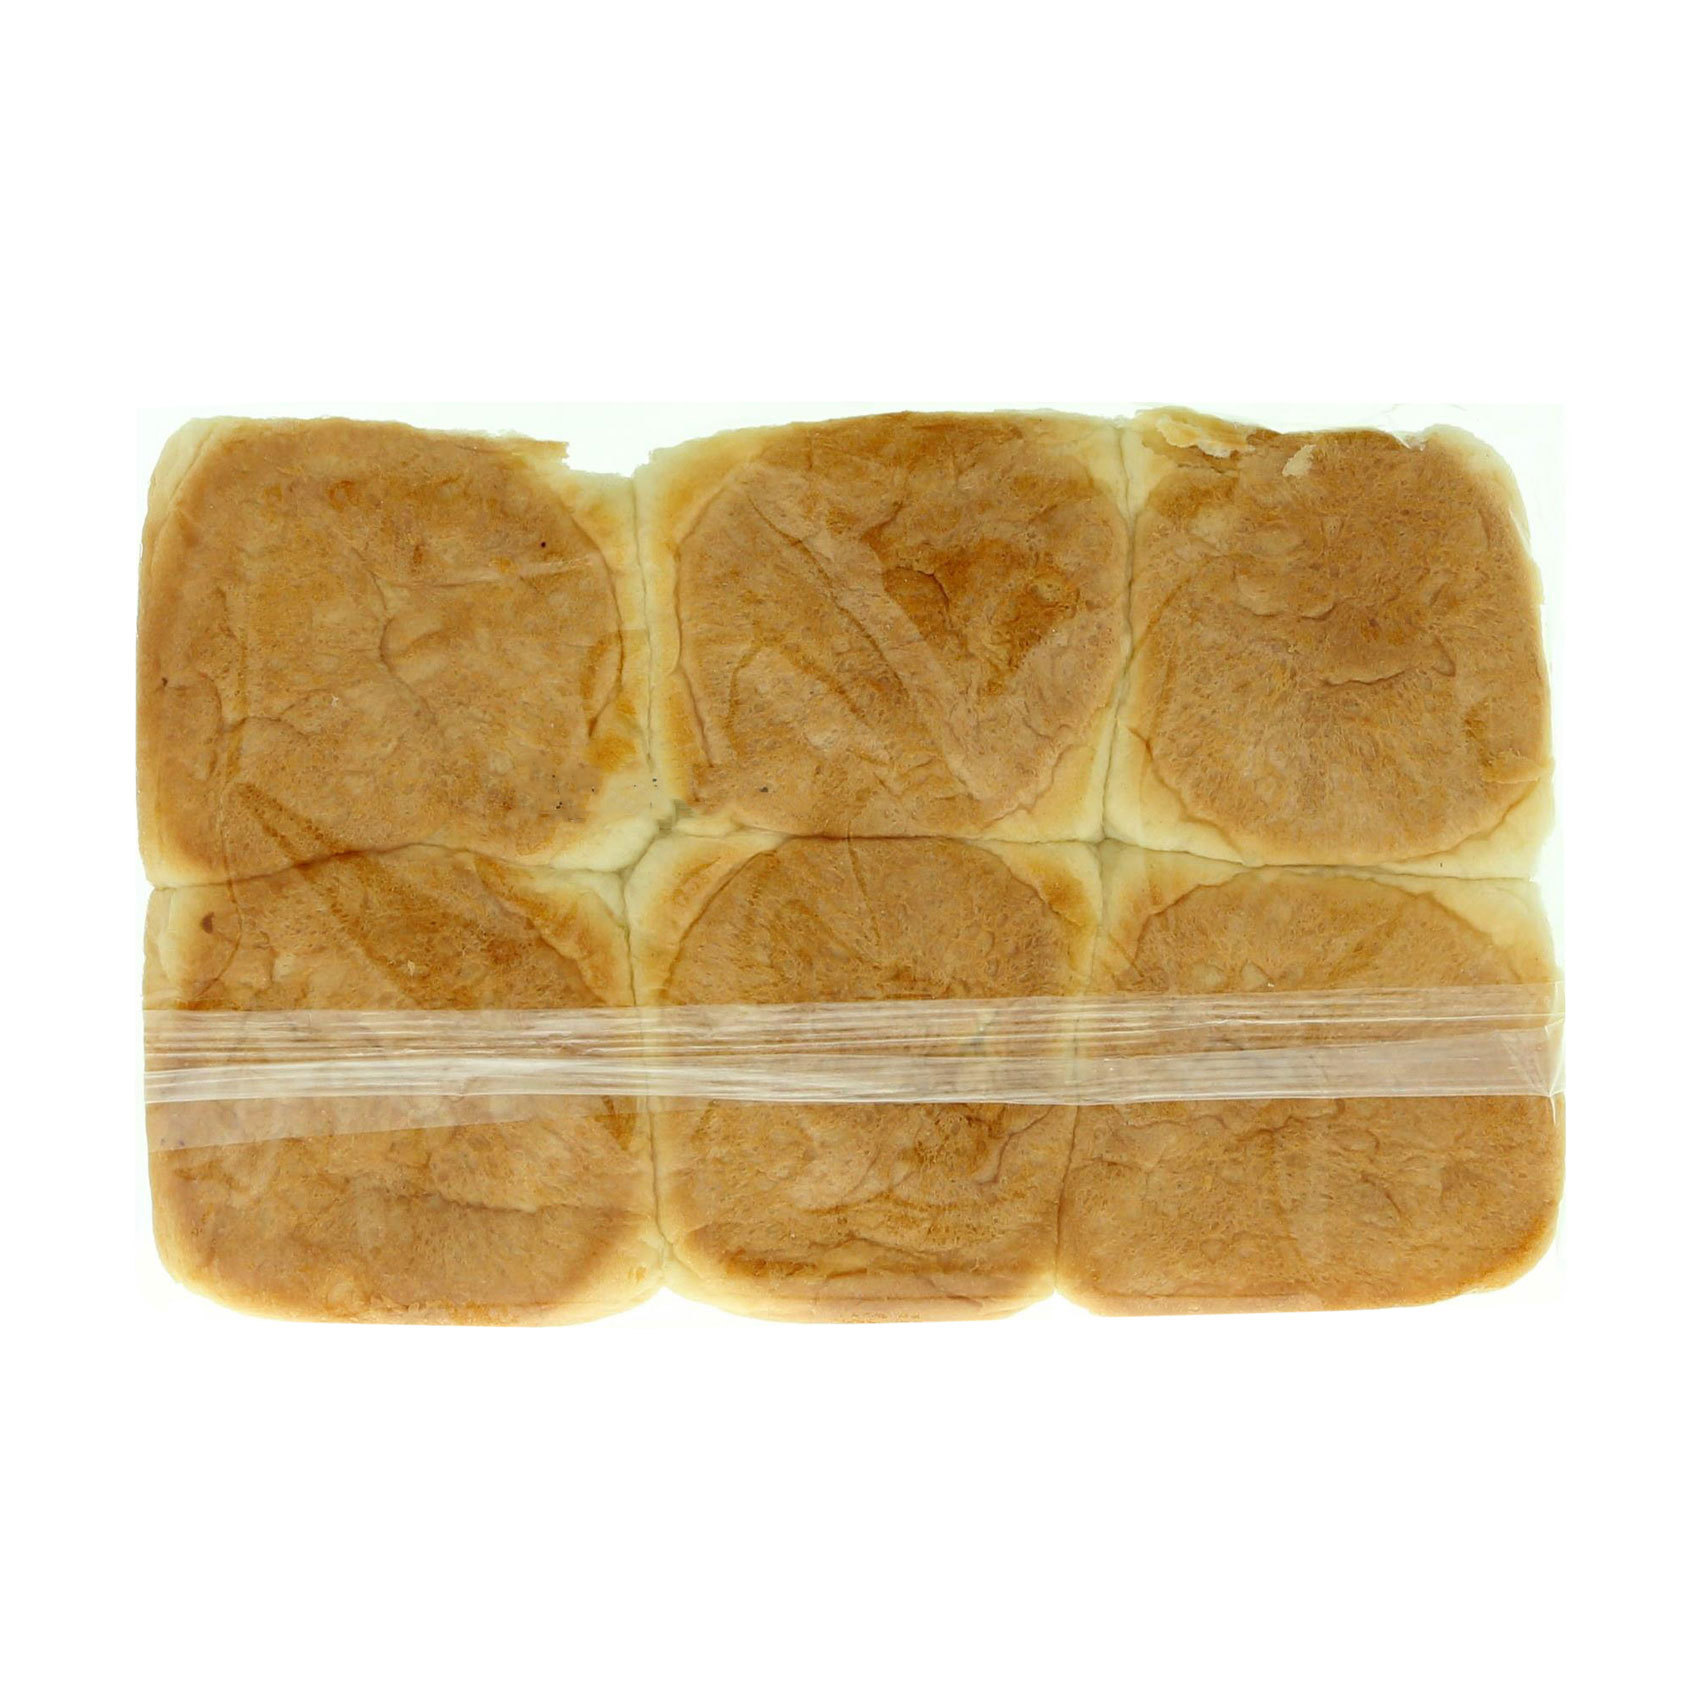 G/LOAF BUNS GOLDEN  330G